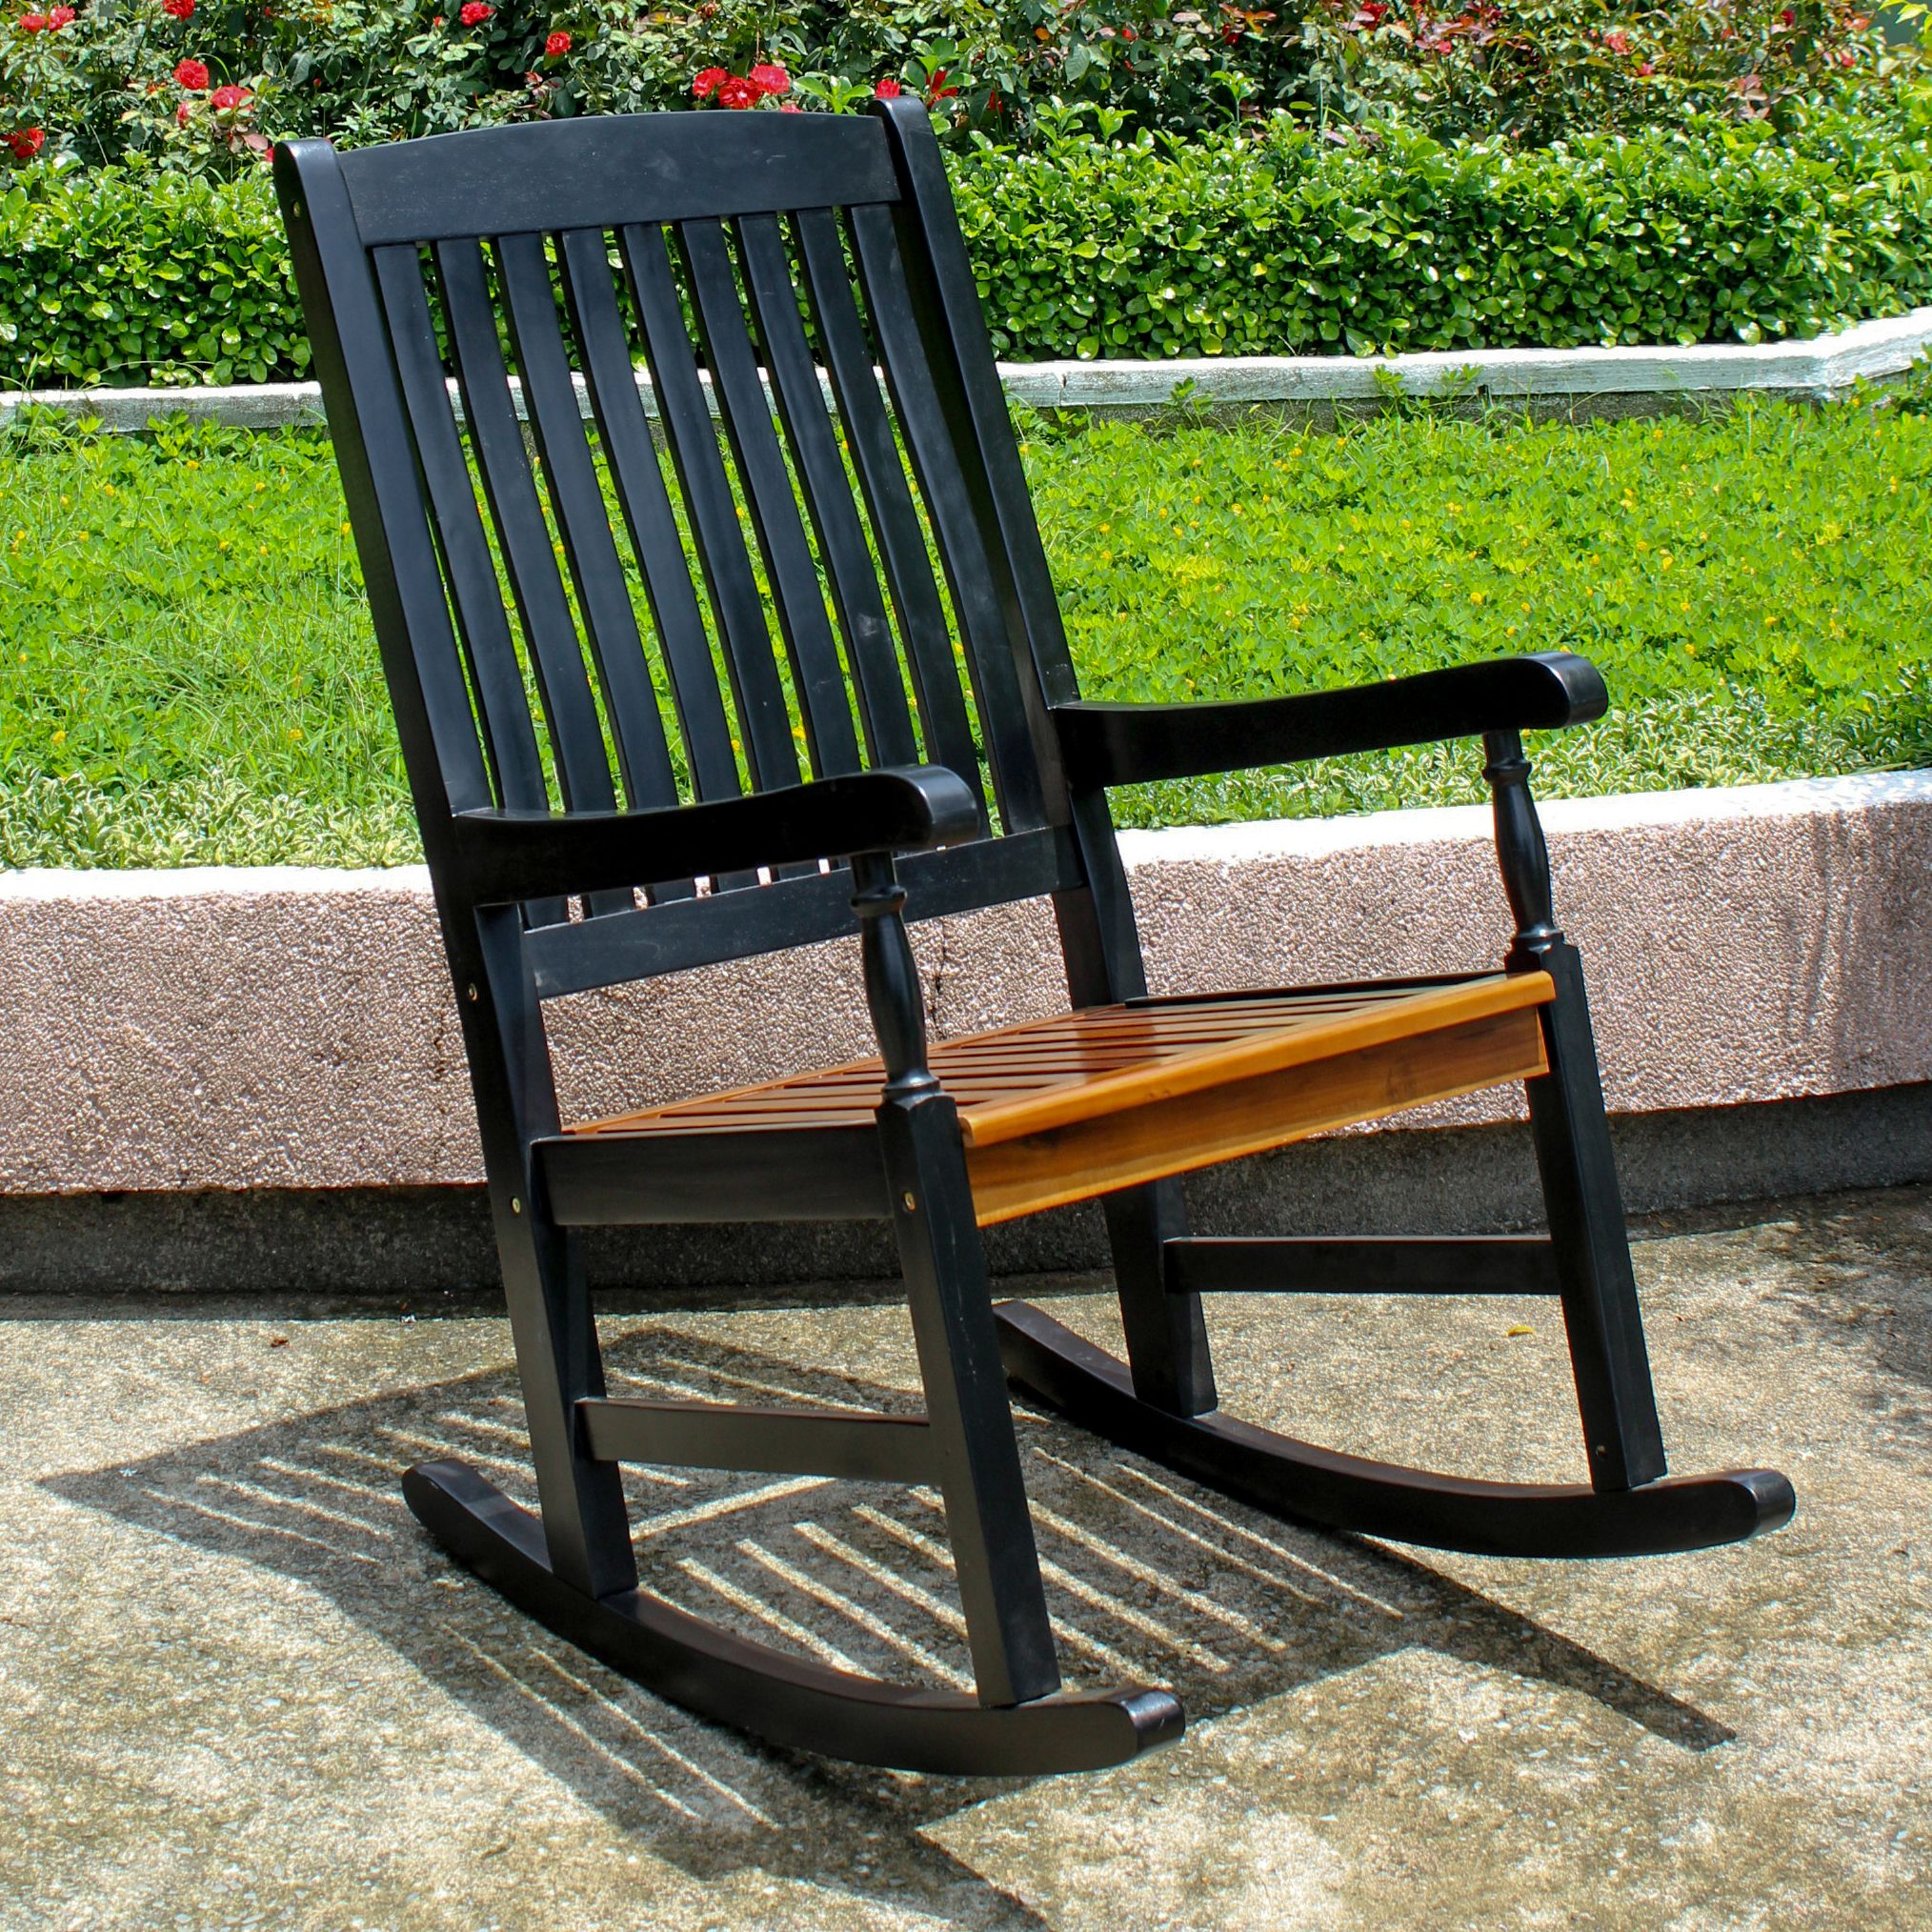 Highland Rocking Chair with UV Paint Antiqued Finish